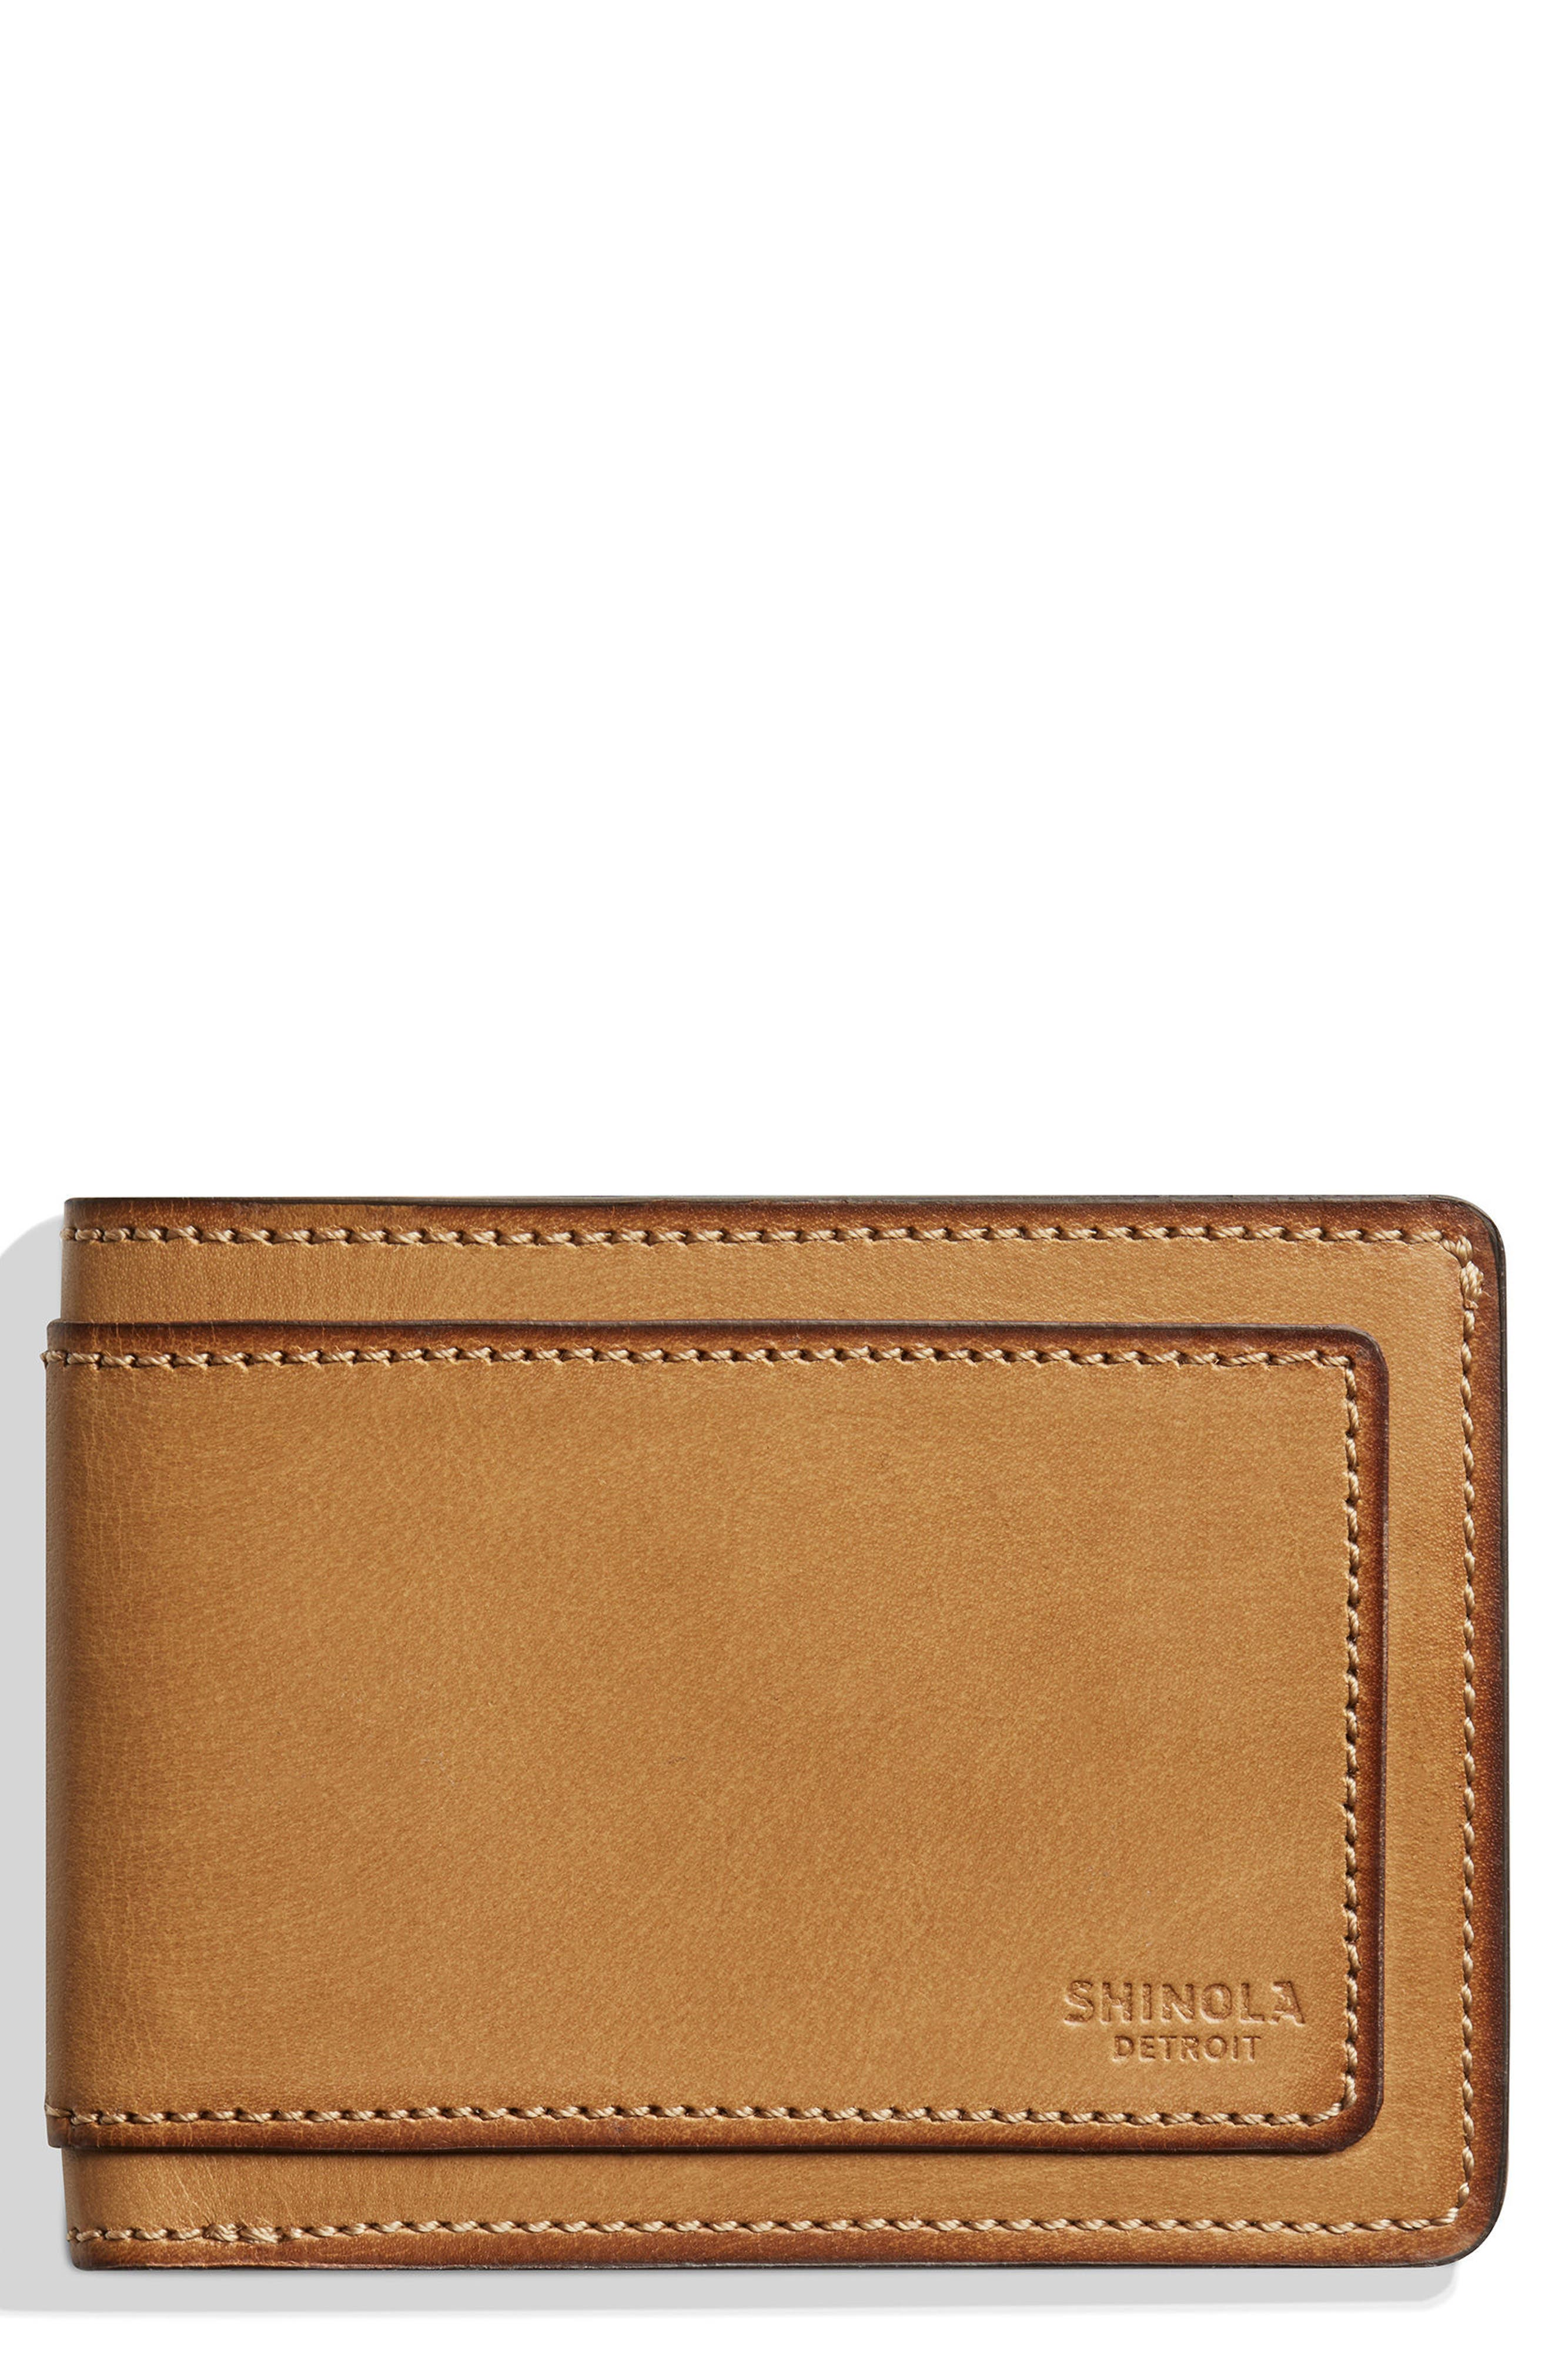 Outlaw Wallet,                         Main,                         color, Sand